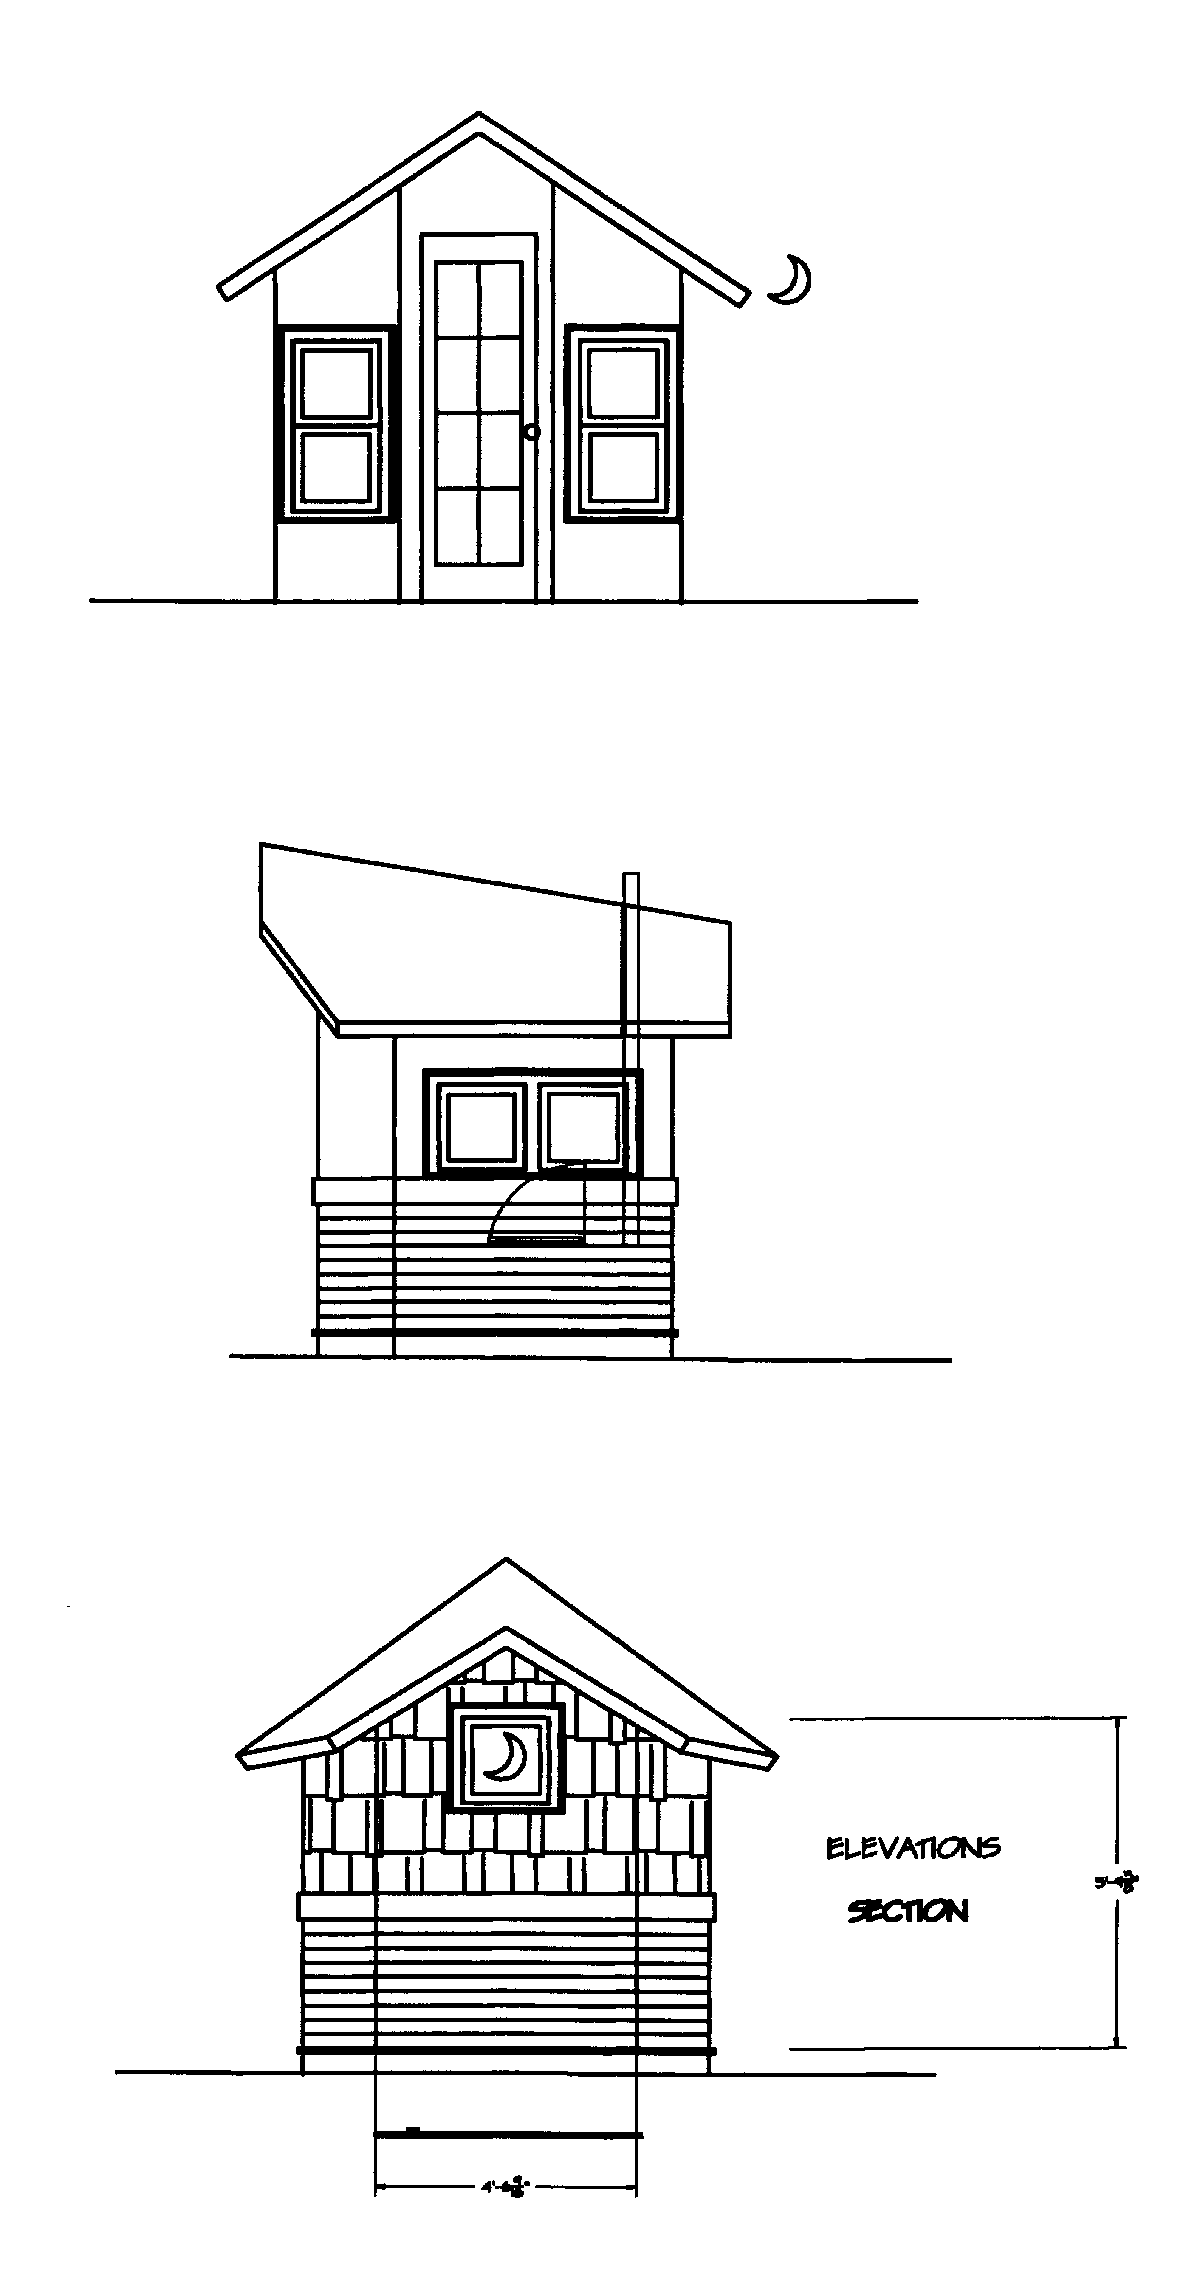 1 Outhouse Tool Shed Plans Randkey additionally Shed Plans 20 X 30 Bathroom Rugs as well A Functional Outhouse additionally 44143832 furthermore A Functional Outhouse. on outhouses plans